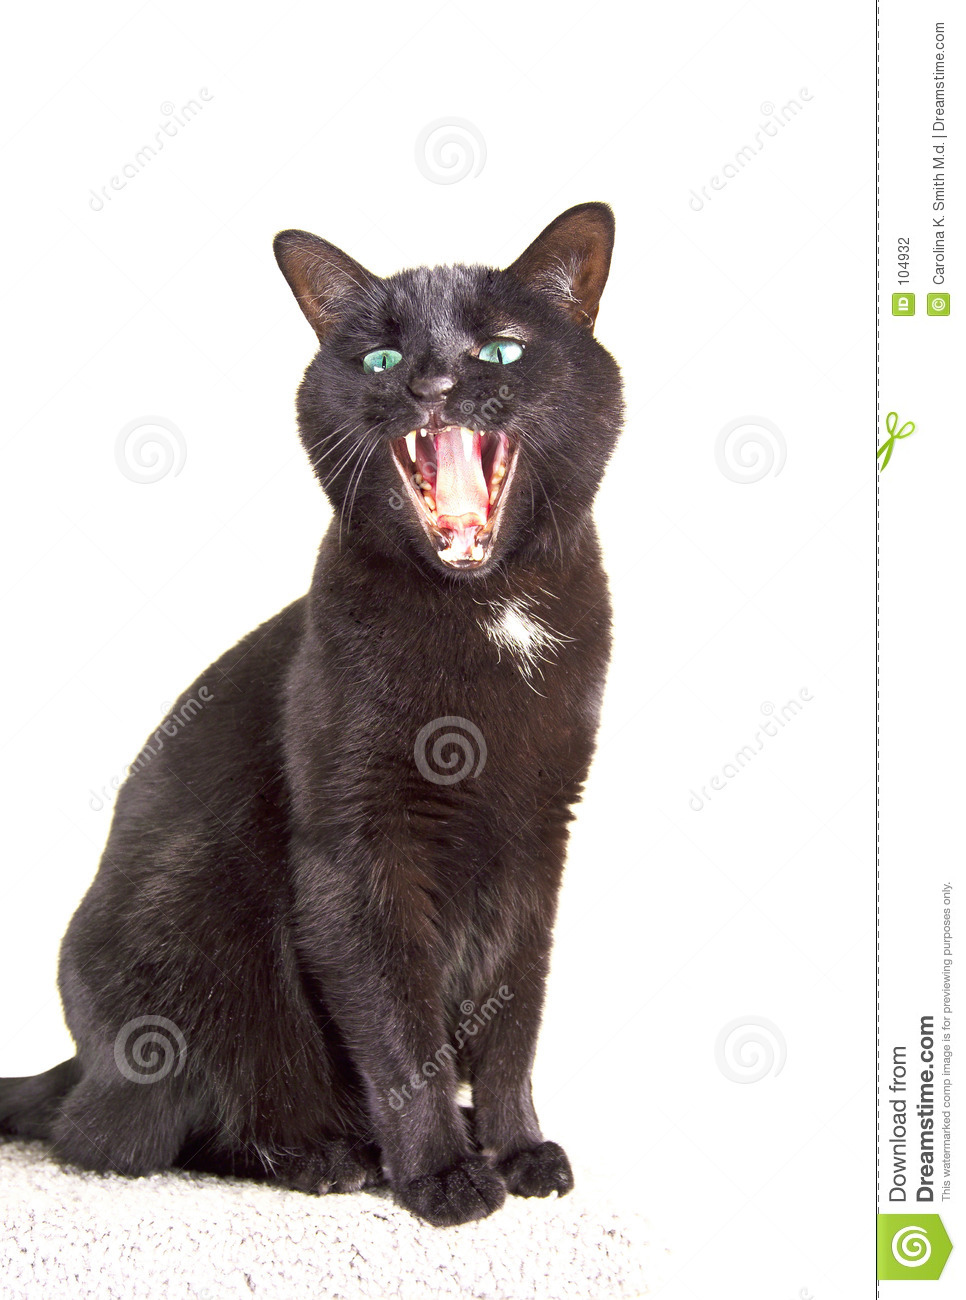 Black Cat Yawn Stock Photo Image Of Green Background 104932